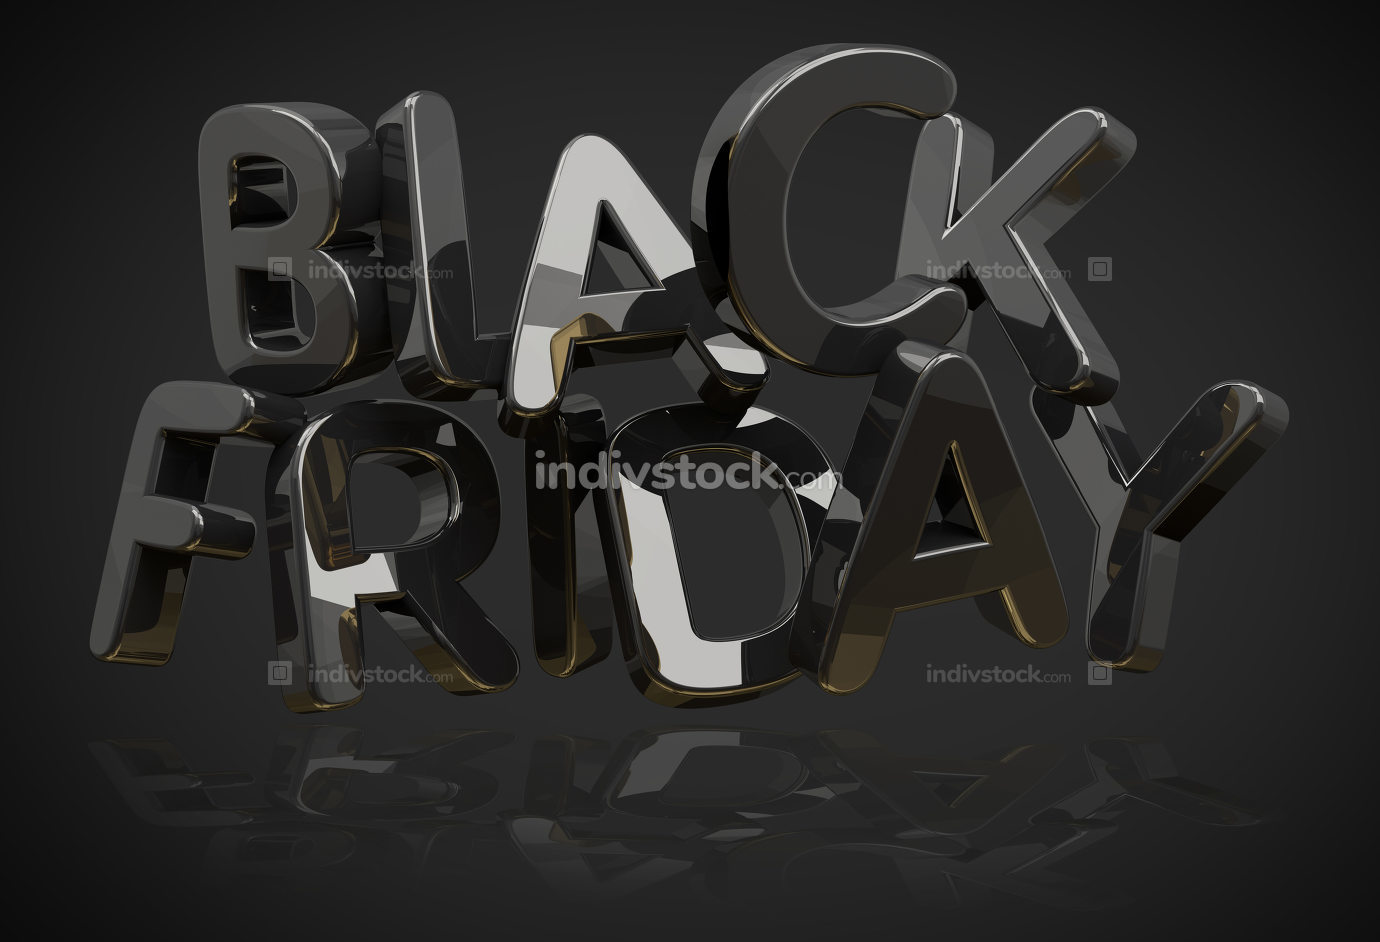 Black Friday background symbol 3d rendering